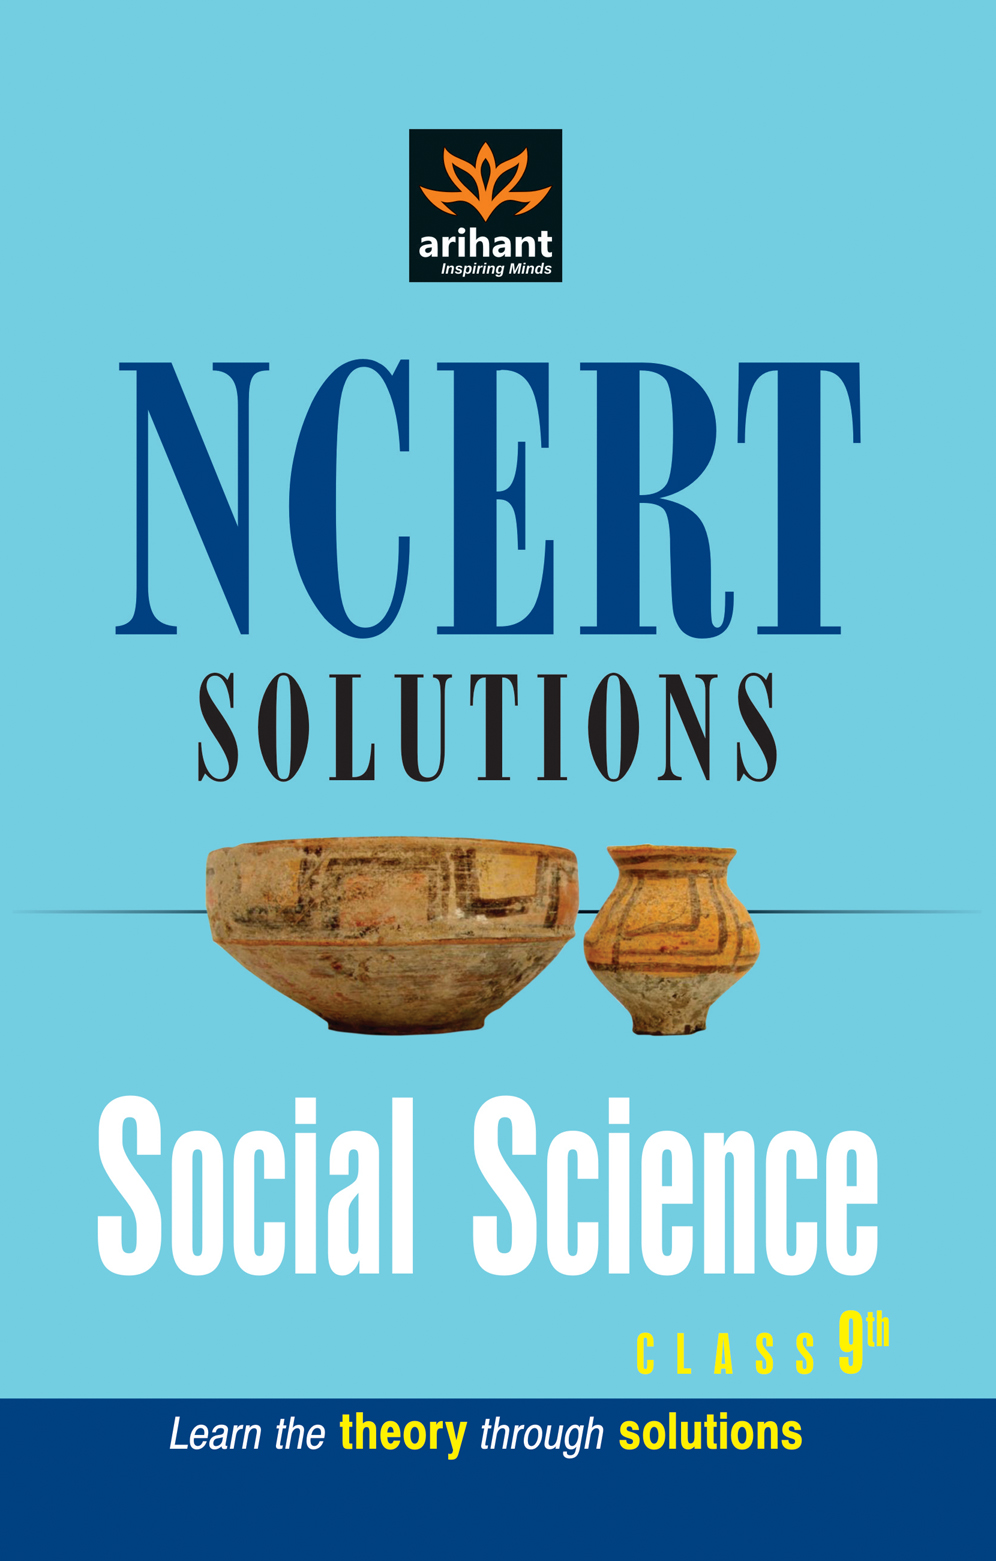 ncert books Home ncert books for cbse class 6, 7, 8, 9, 10, 11, 12 – free download   ncert text books for class 12, 11, 10, 09, 08, 07, 06 are given blow please.